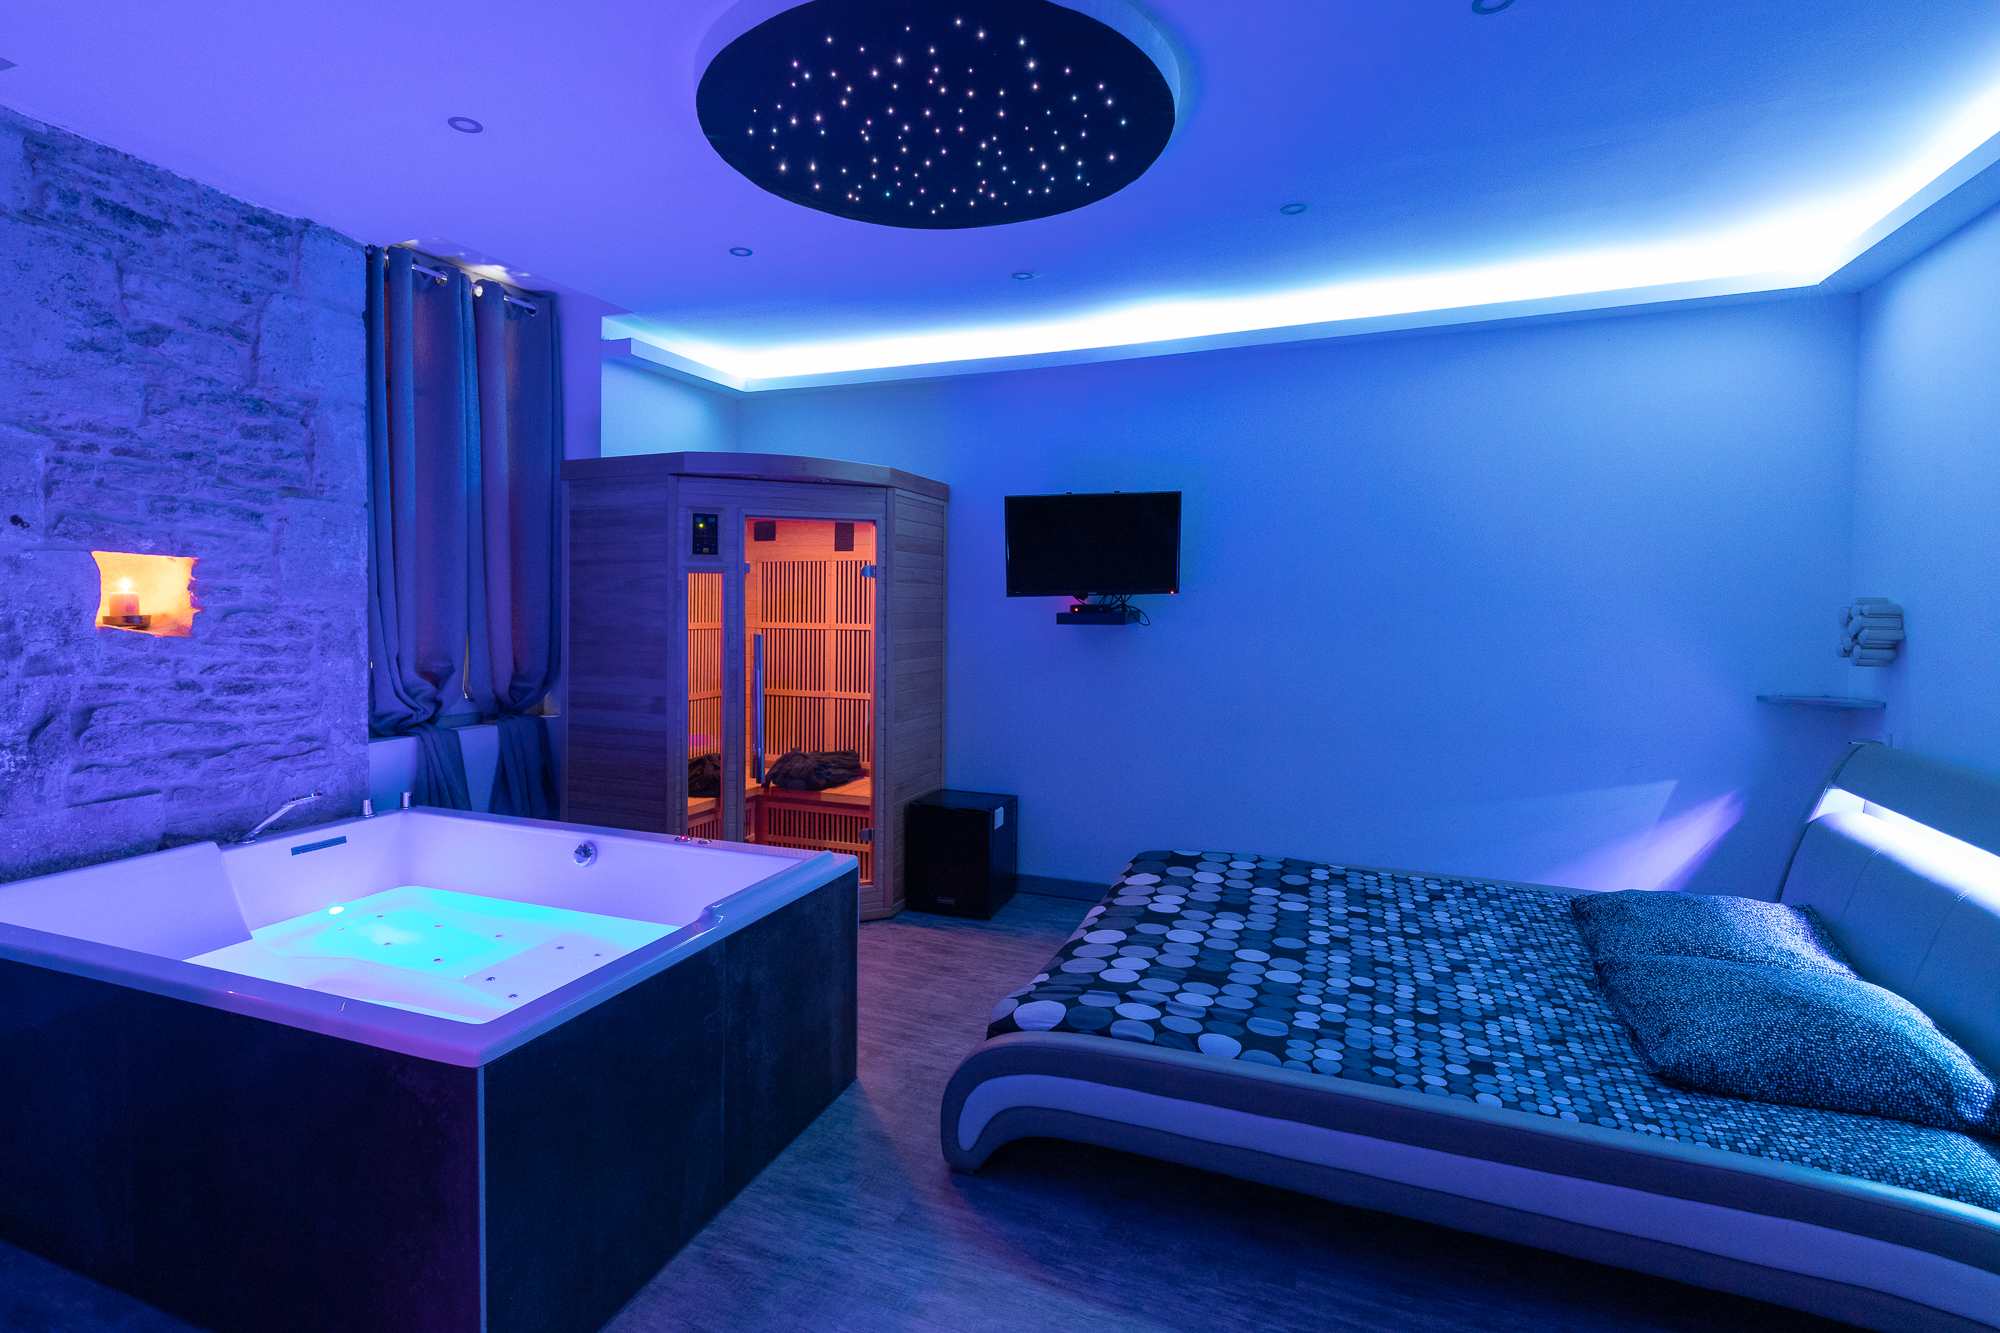 Appartement Cocooning Spa Spa Privatif A Dijon